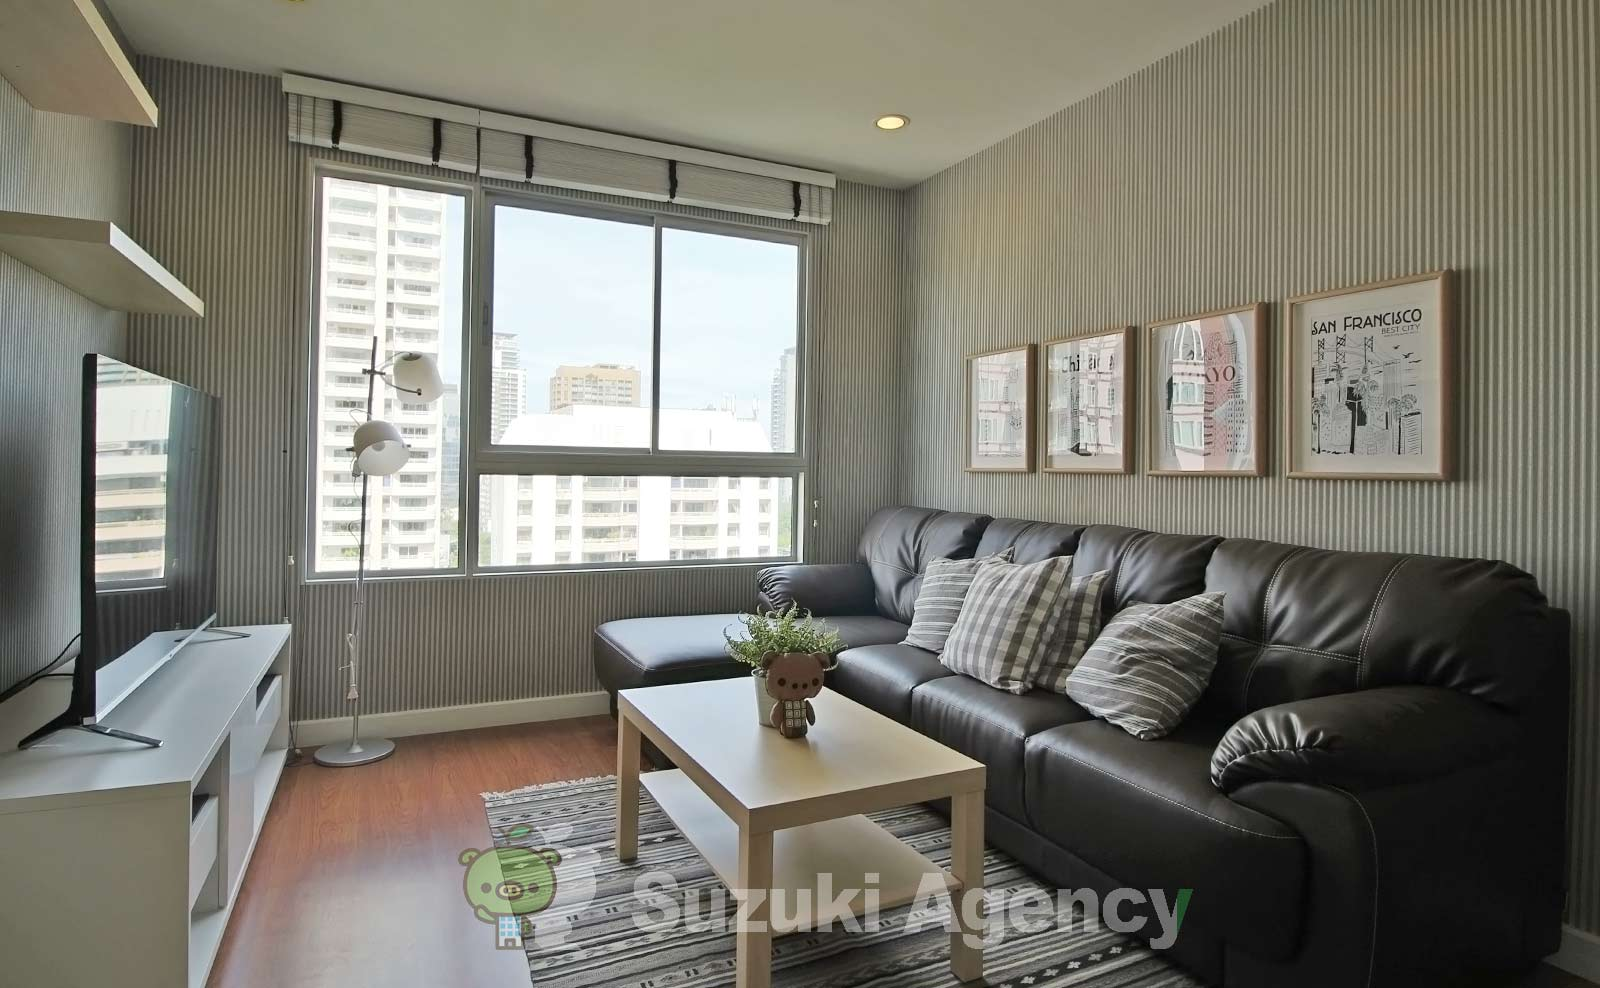 Condo One X Sukhumvit 26:1Bed Room Photos No.2